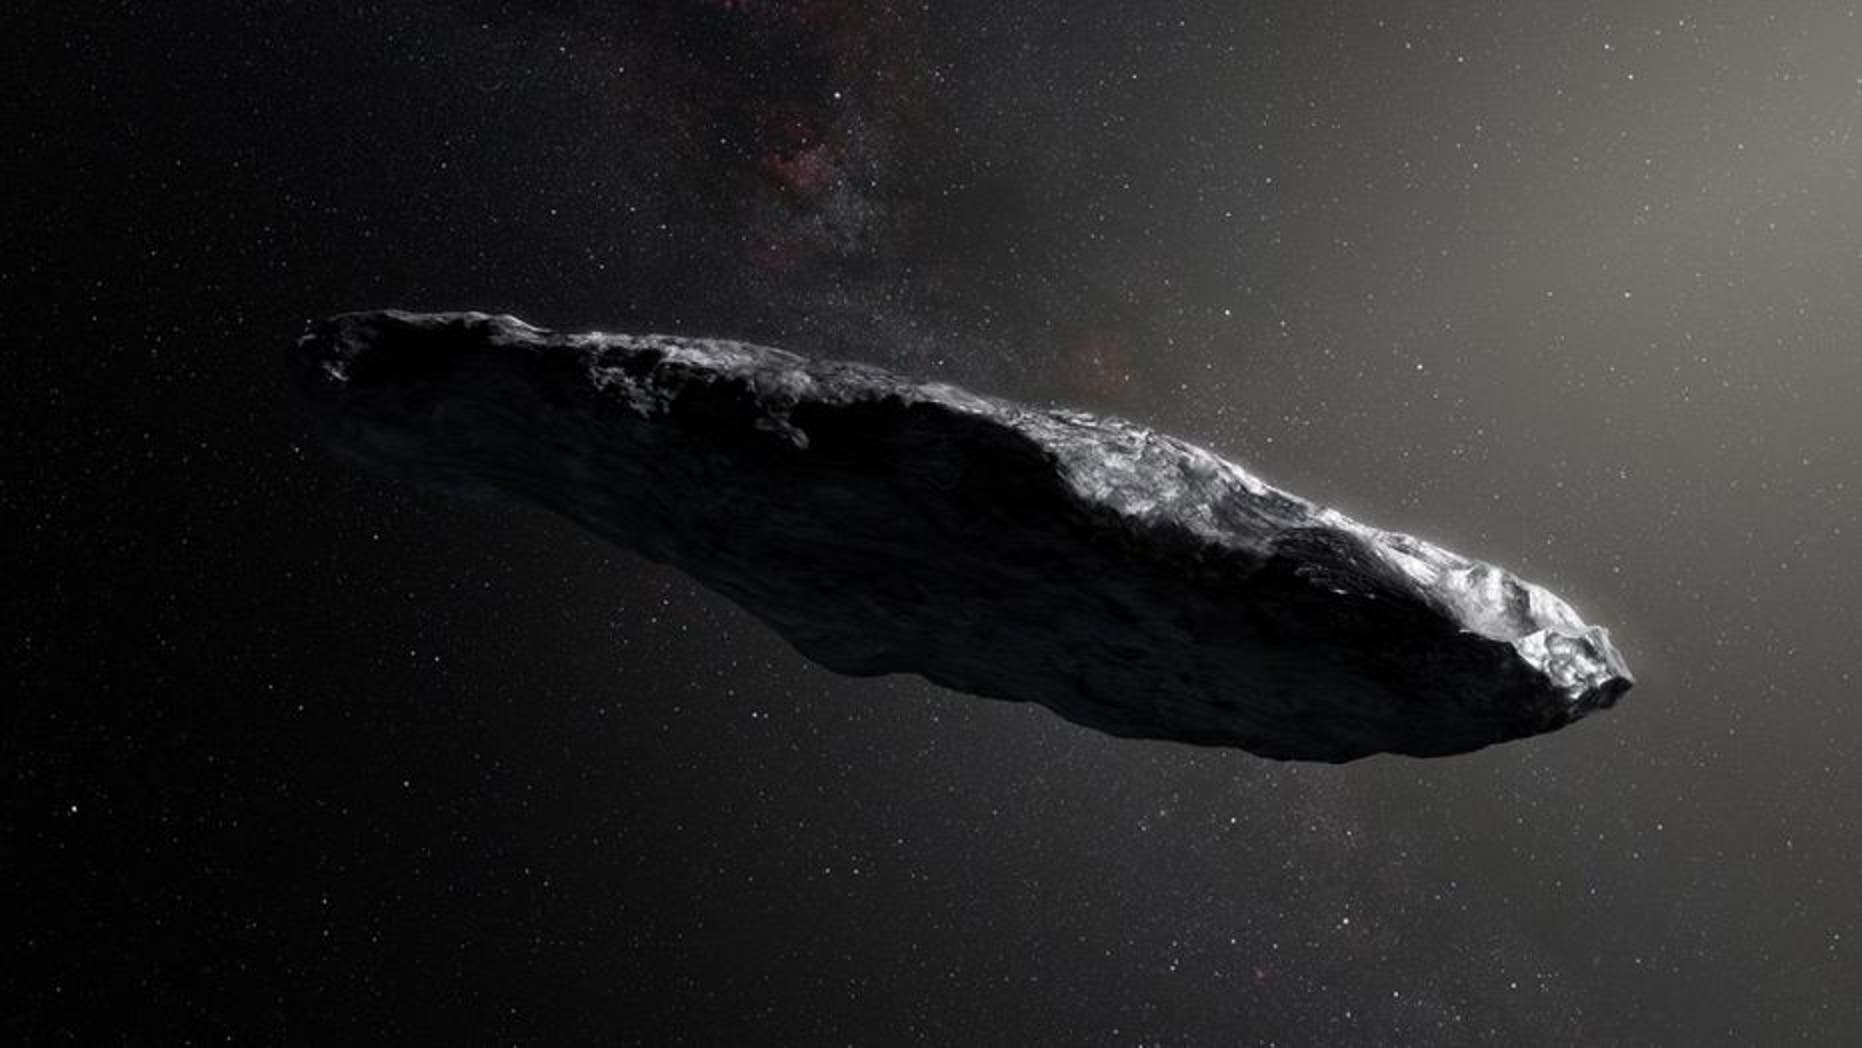 An artist's depiction of Oumuamua the first detected interstellar object